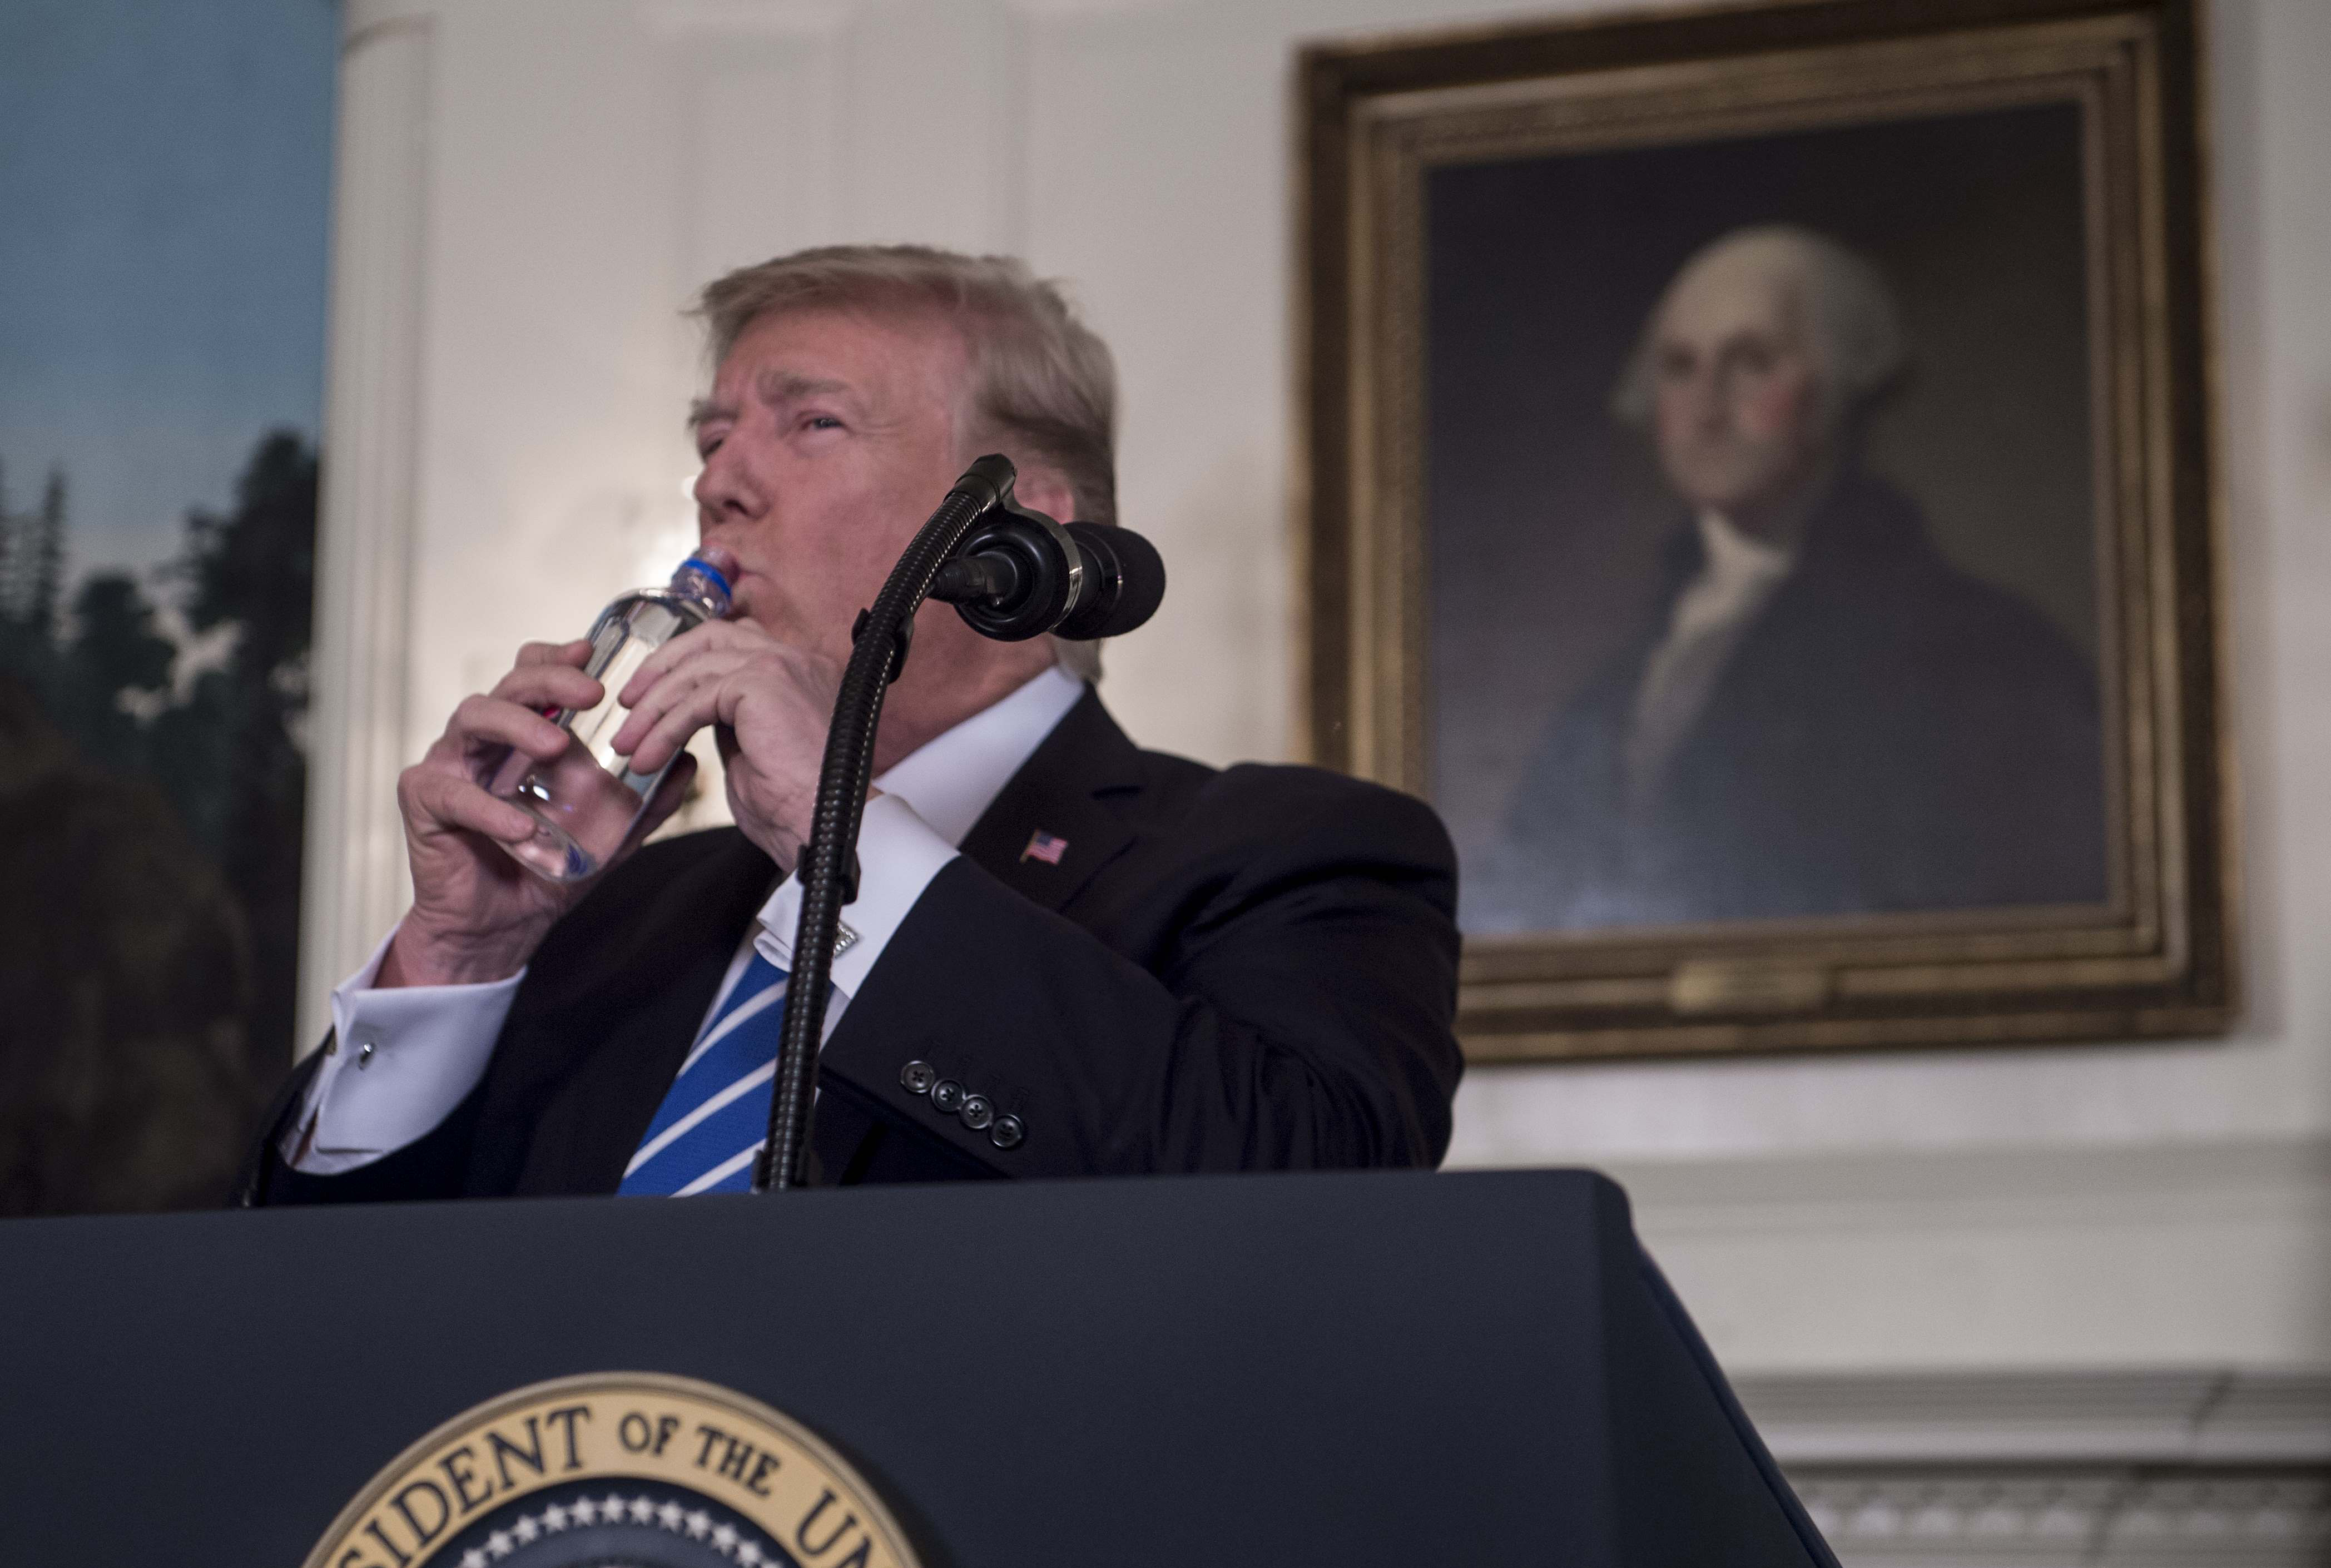 US President Donald Trump drinks water from a bottle as he delivers remarks on November 15, 2017 in the Diplomatic Room at the White House in Washington, DC. At right is a portrait of first US president George Washington. (NICHOLAS KAMM/AFP/Getty Images)